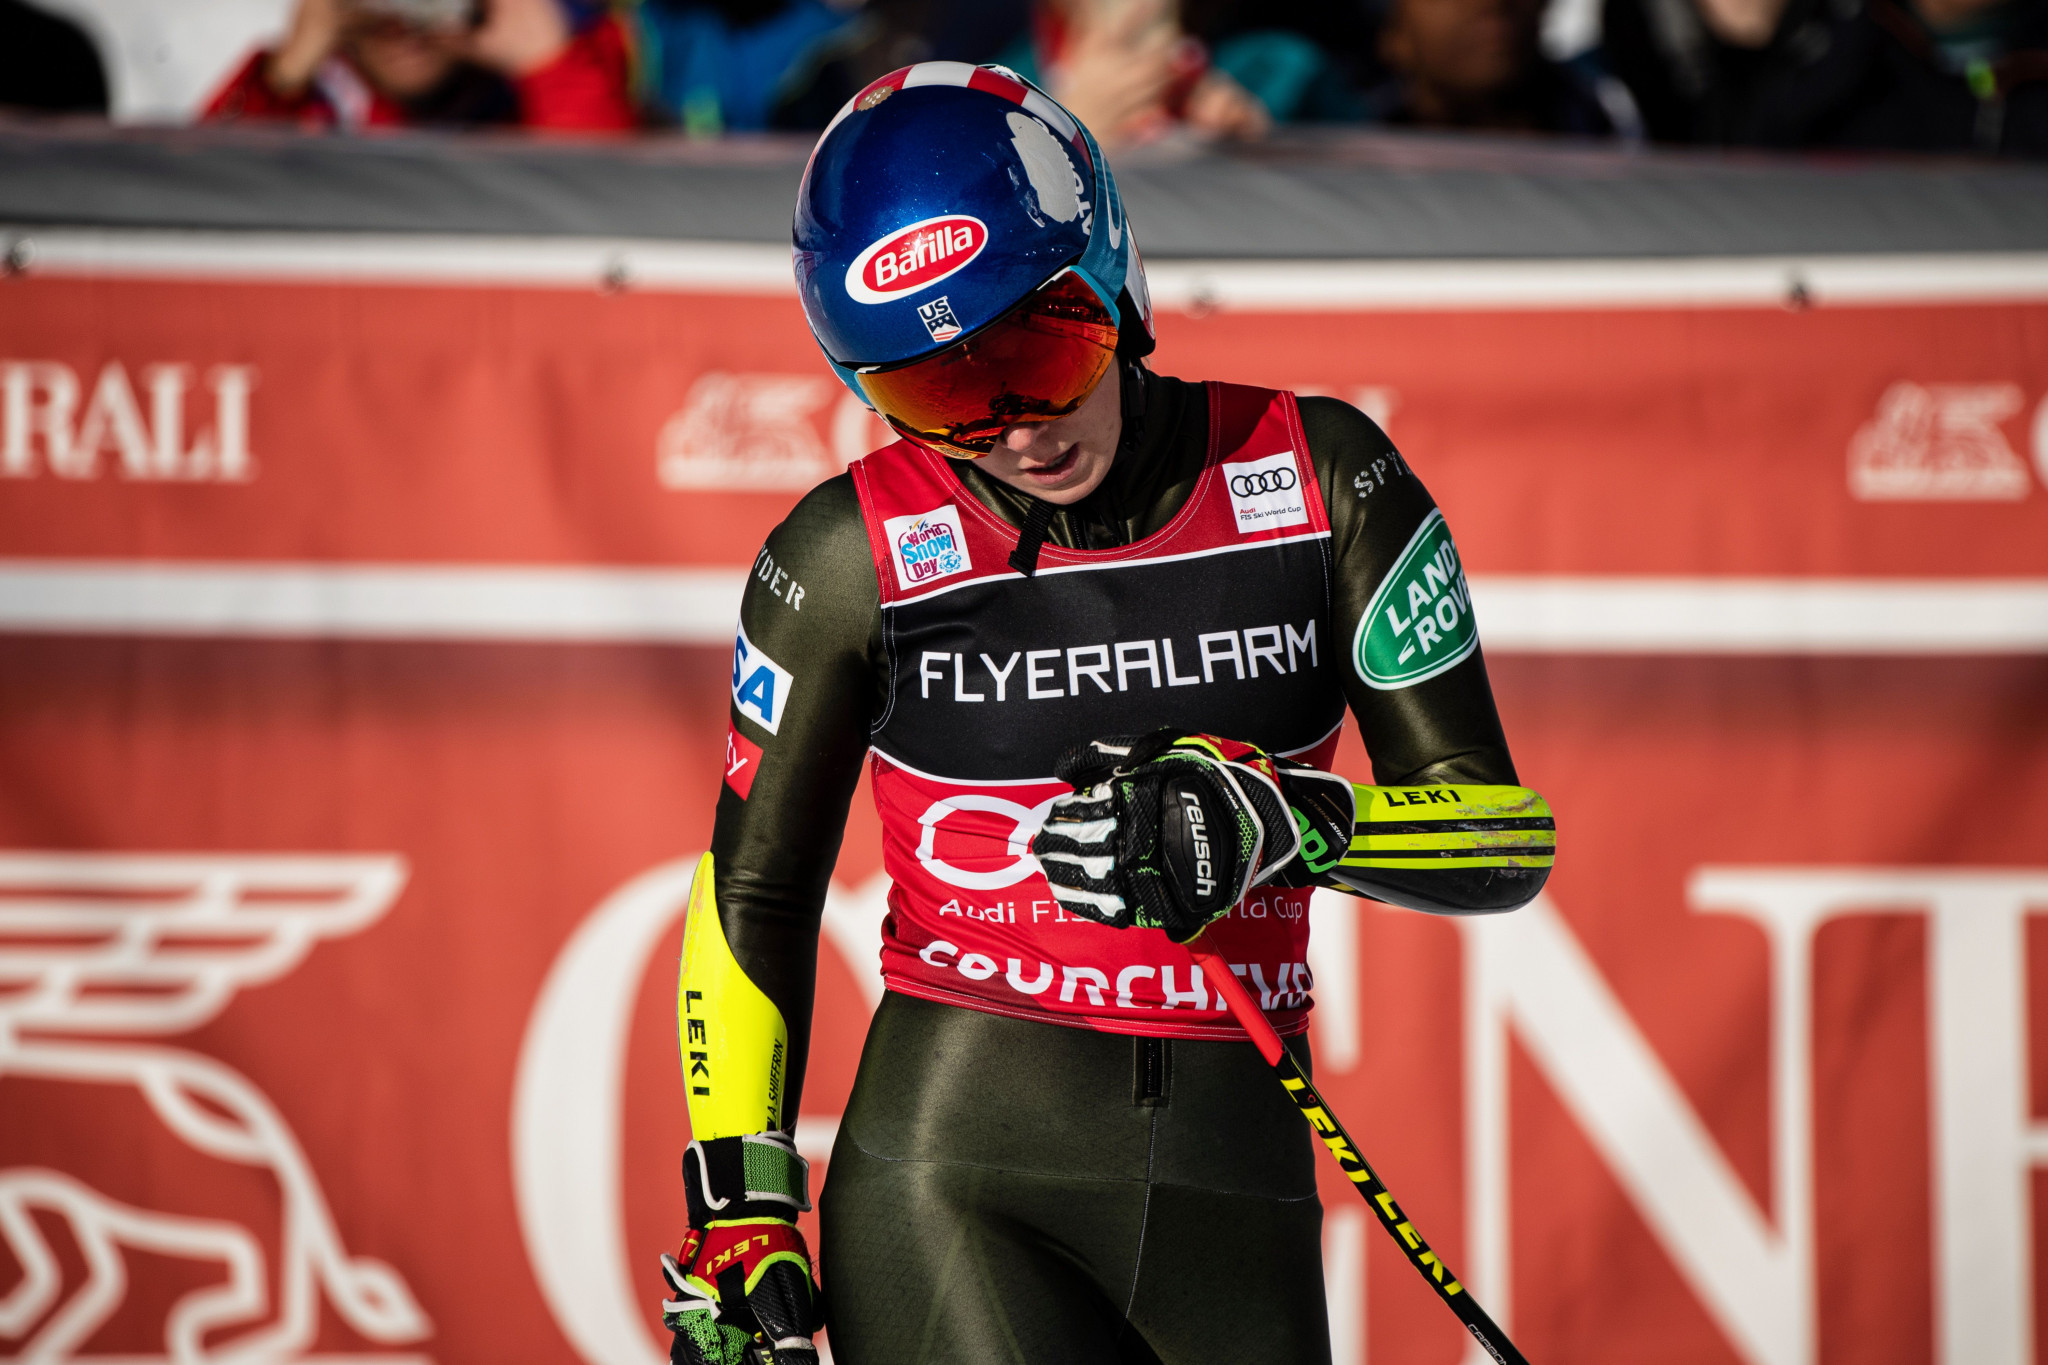 Mikaela Shiffrin finished 17th place in the giant slalom at the FIS Alpine Ski World Cup event in Courchevel ©Getty Images